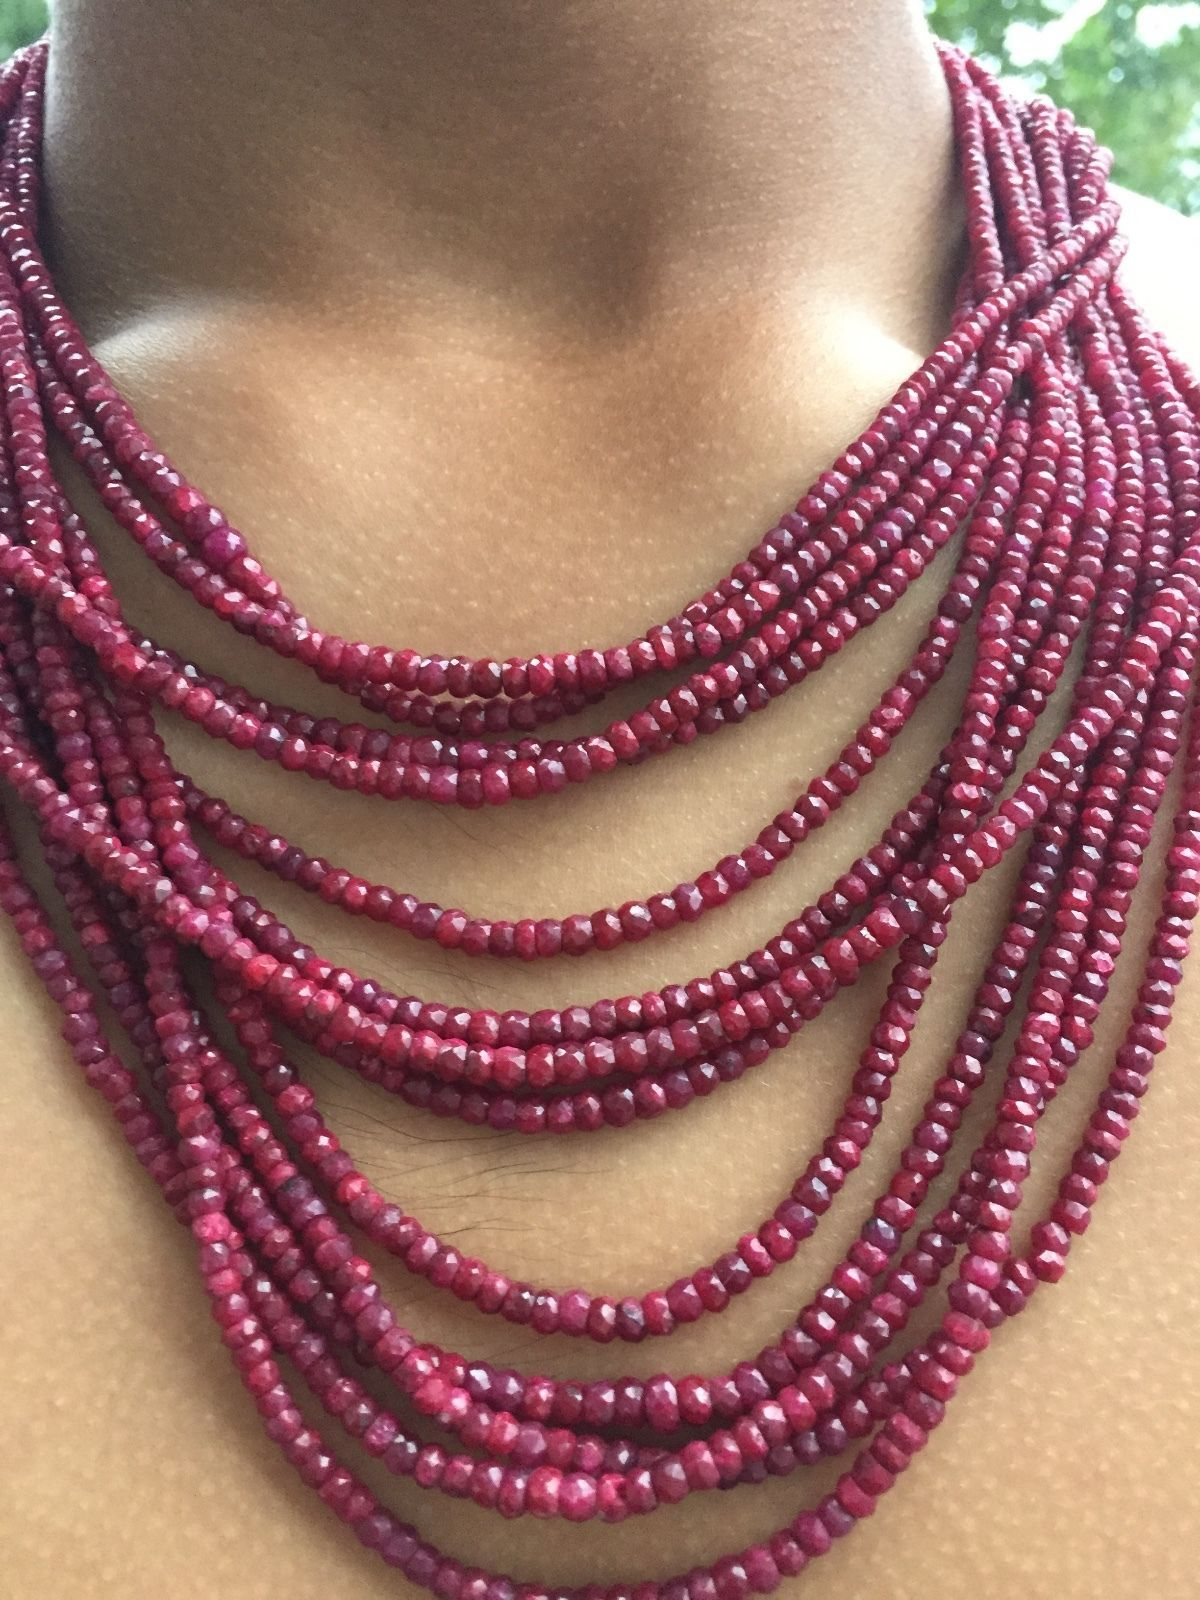 Huge 946 cts 13 strands Natural Ruby Diamond Platinum SS Necklace & Earrings